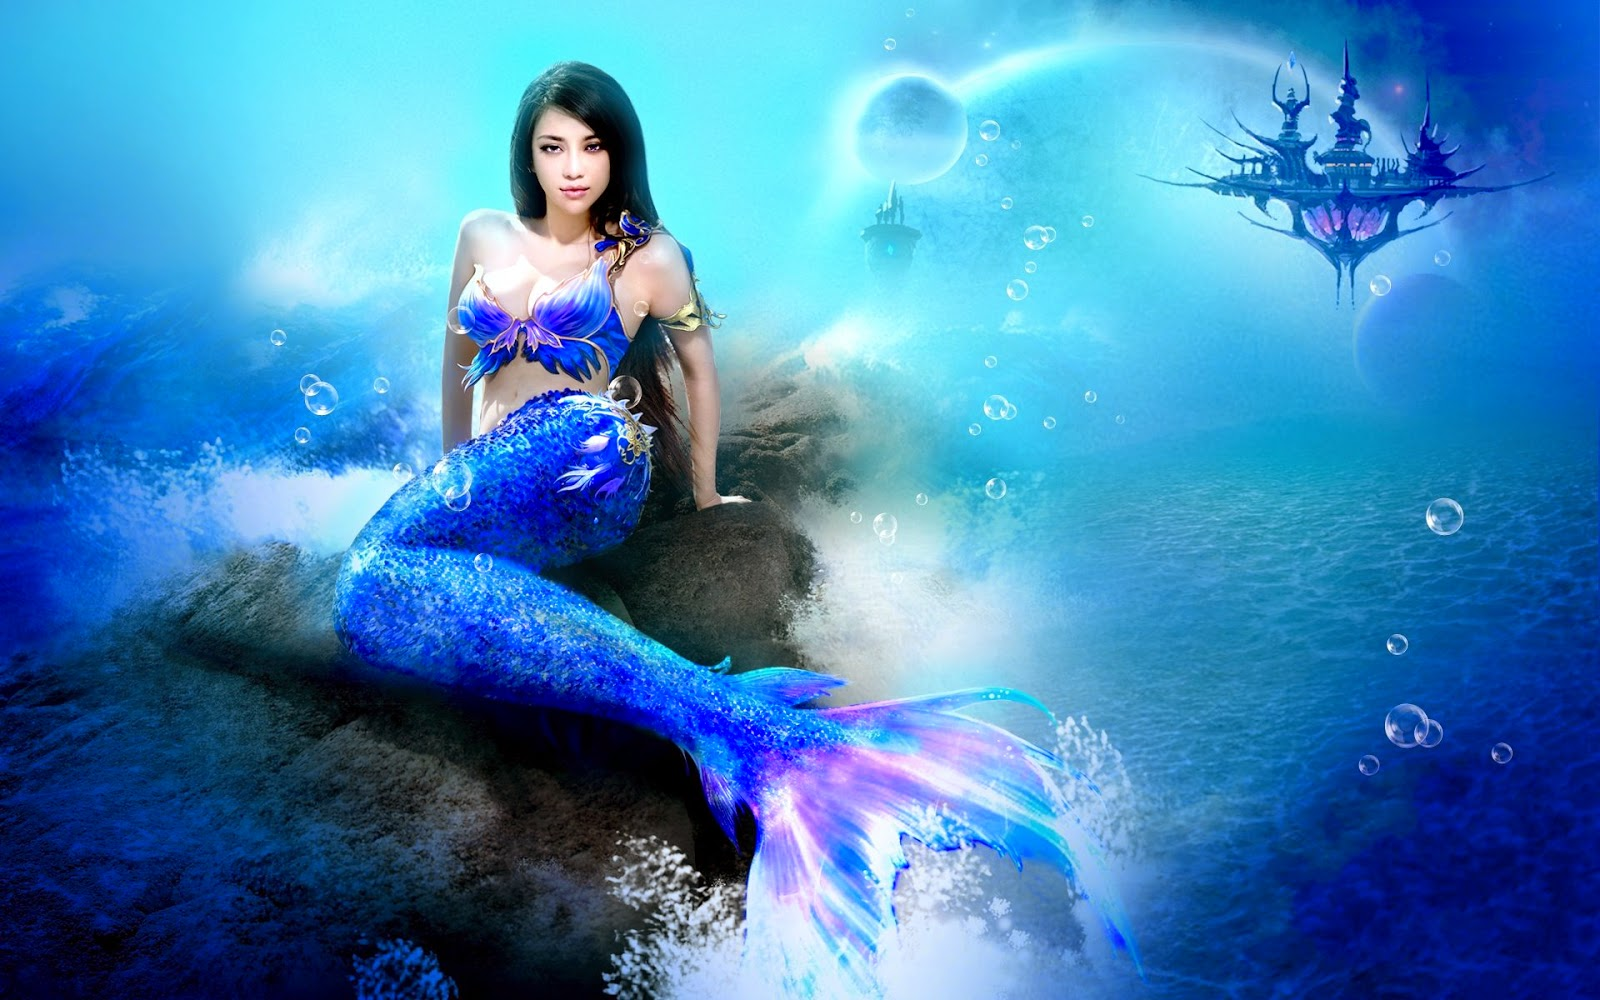 Beautiful-attractive-young-women-dressed-up-as-mermaid-in-real-life-picture-for-pc-desktop.jpg